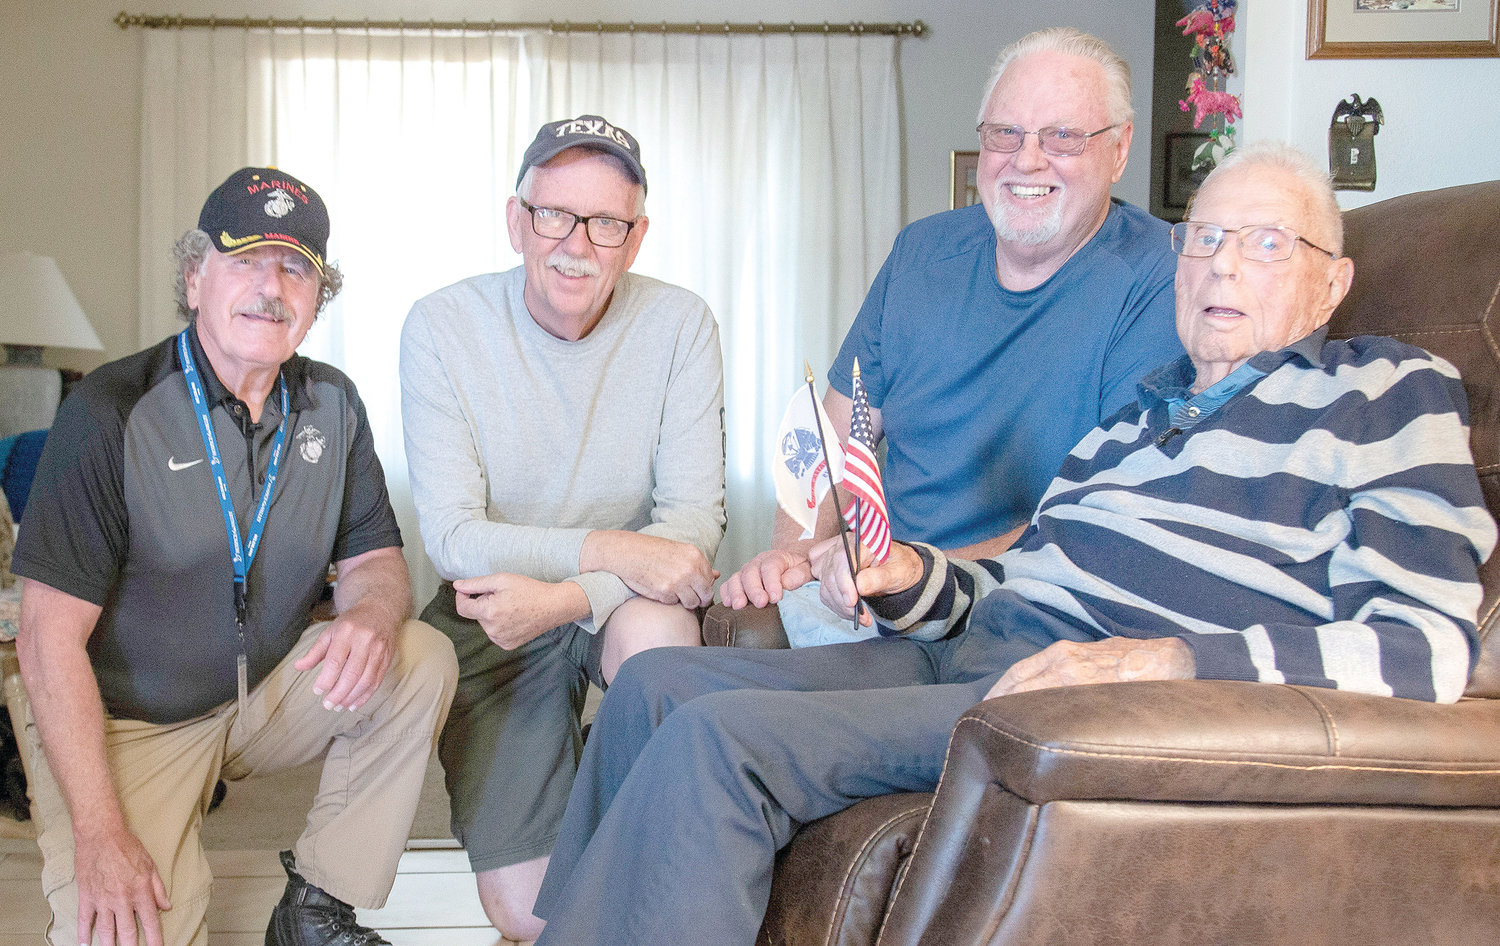 Hospice of the Valley volunteer Rodney Dehmer meets with Tom and Jim Dorr and their father, World War II veteran Chester Dorr, who was honored on the 75th anniversary of D-Day. Their meeting came before the coronavirus outbreak; hospice volunteers now visit with veterans remotely via video. [Courtesy of Hospice of the Valley]